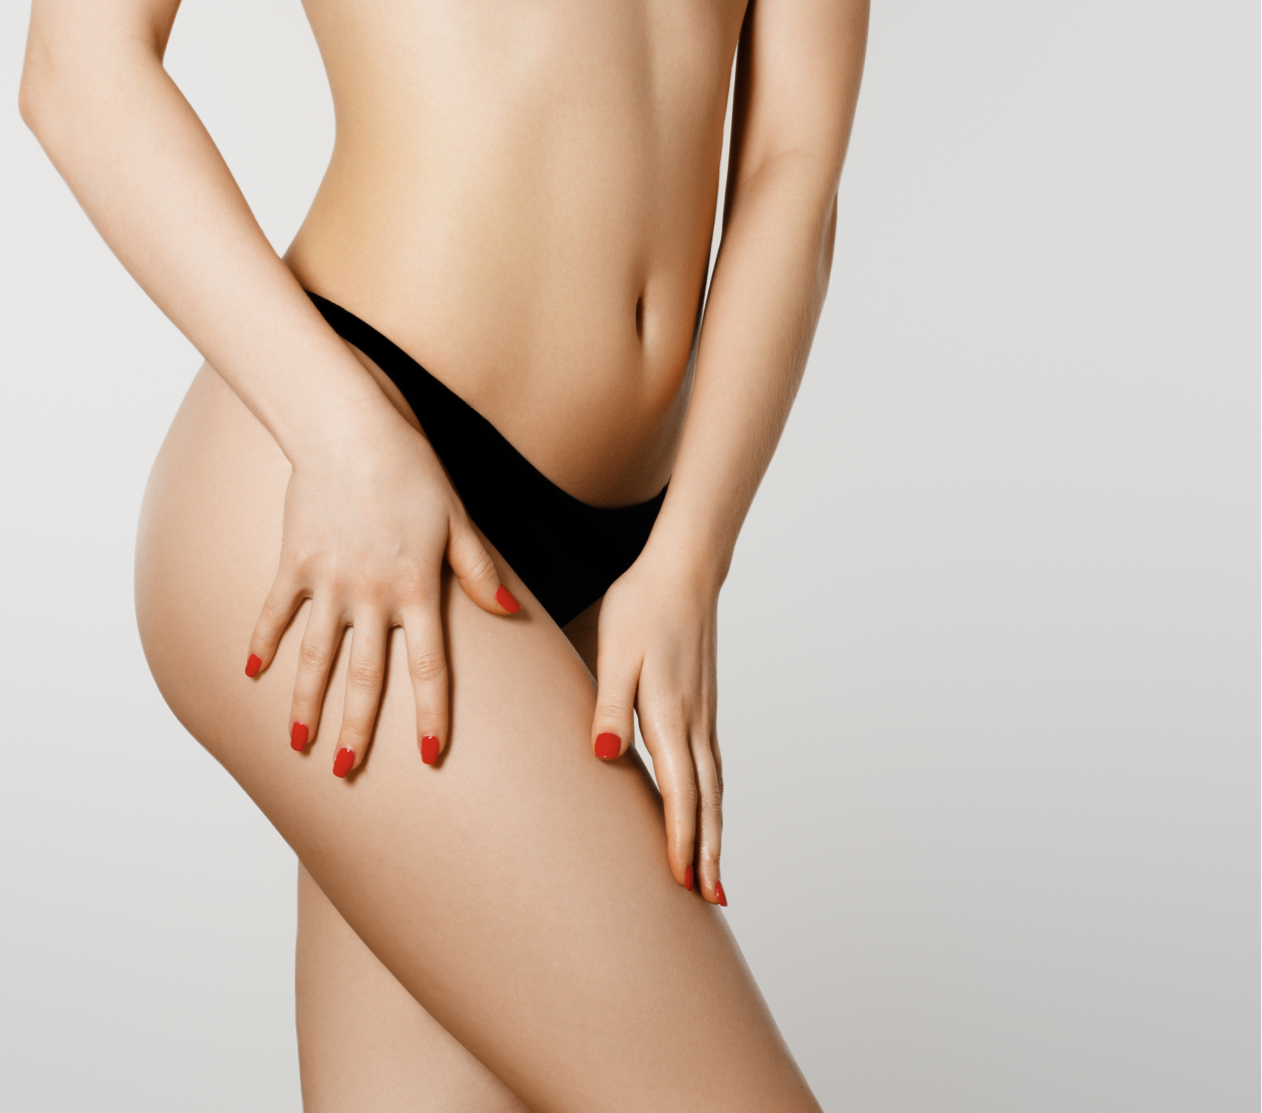 Thigh Lift in The Woodlands for Houston, TX